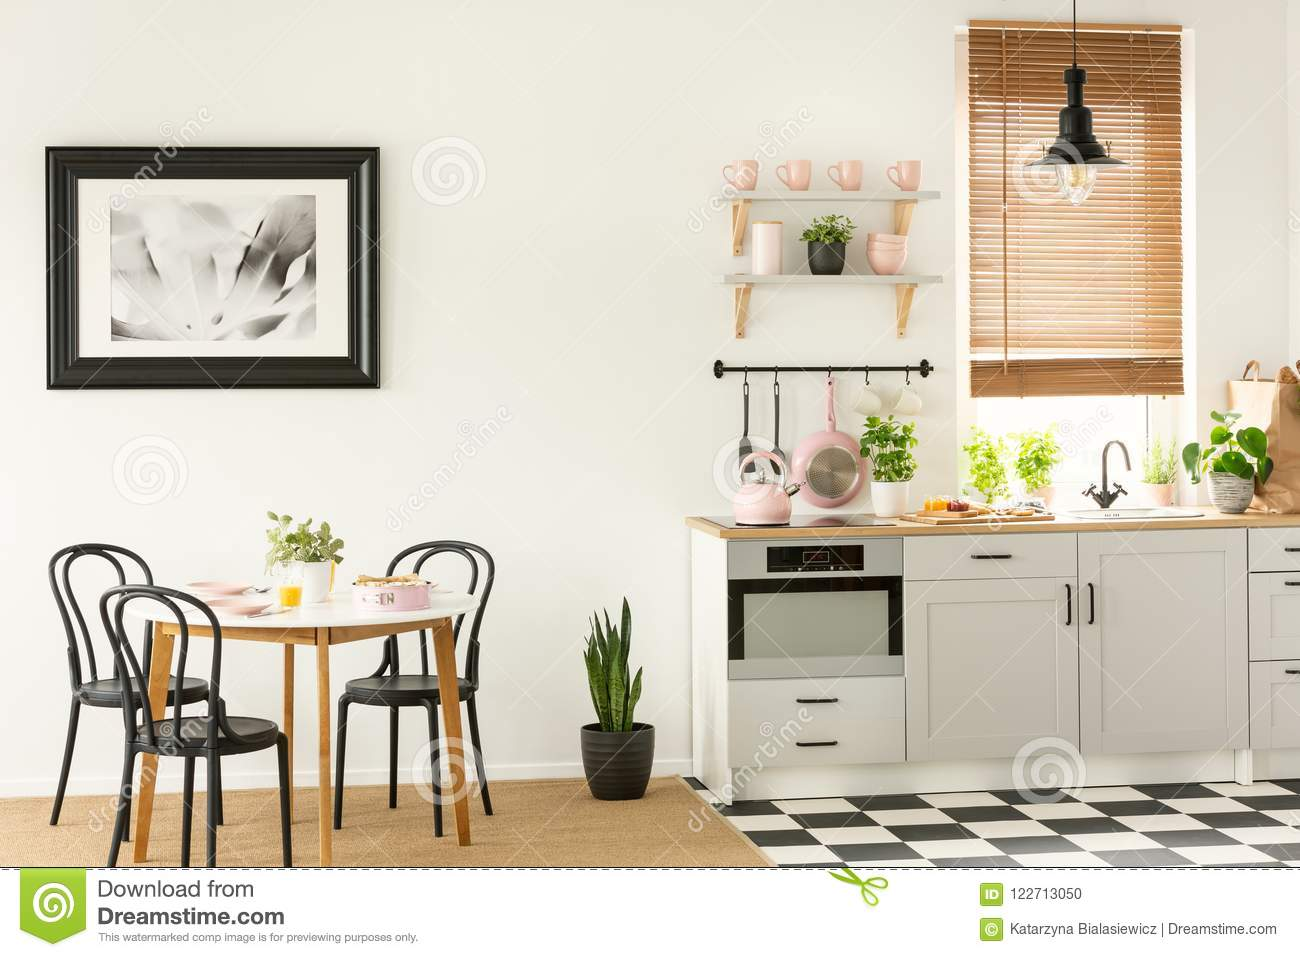 Painting In A Black Frame Dining Room Interior With Table And Chairs Next